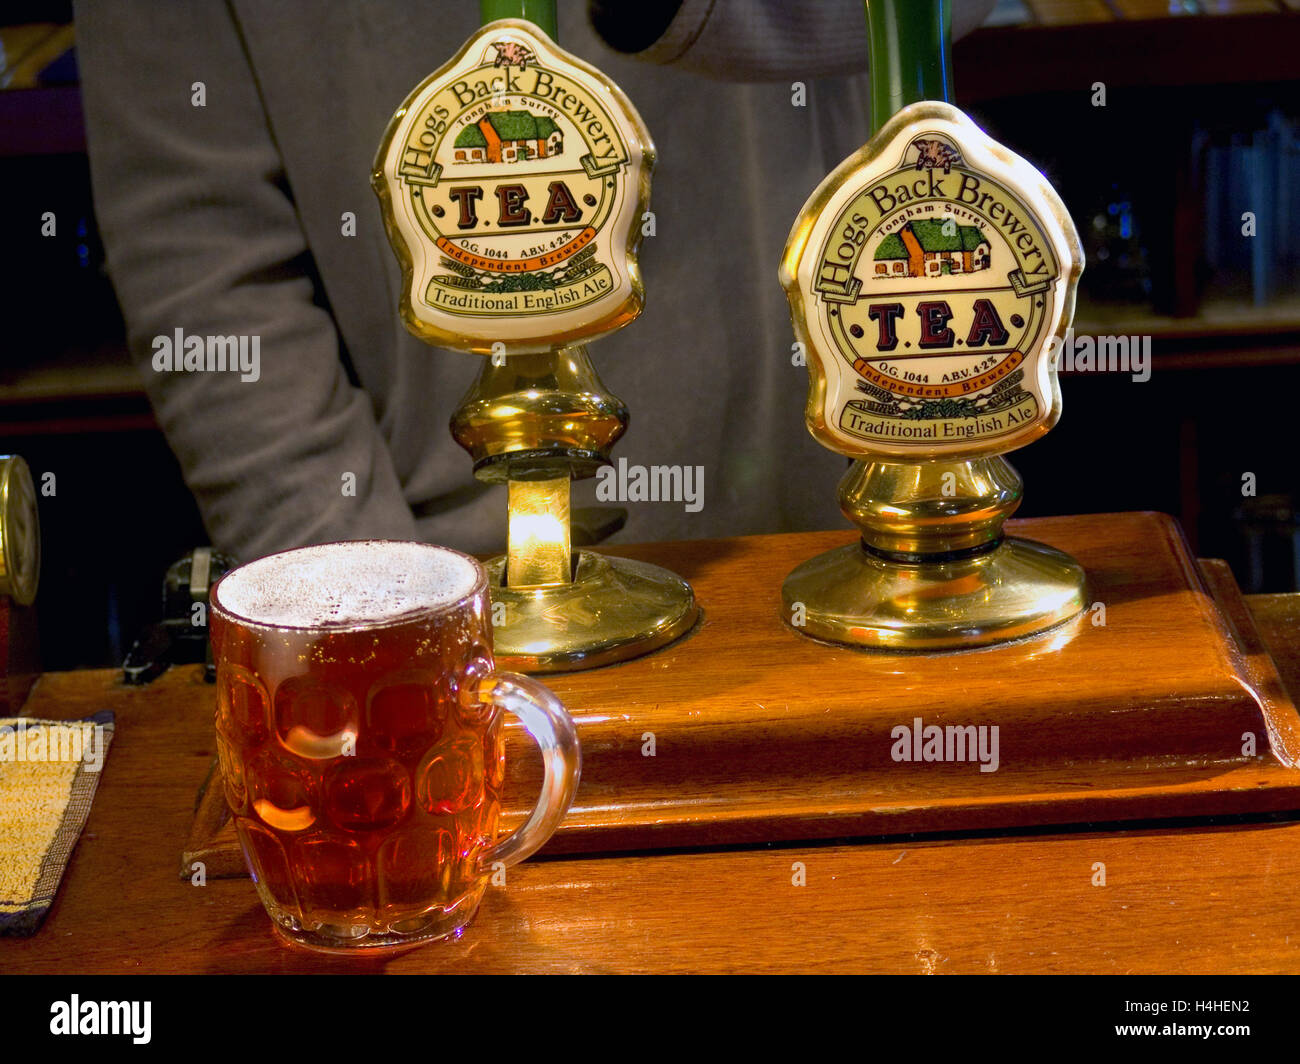 Pulling a pint of 'T.E.A.' Traditional English Ale at the Hogs Back Brewery in Tongham Surrey UK - Stock Image